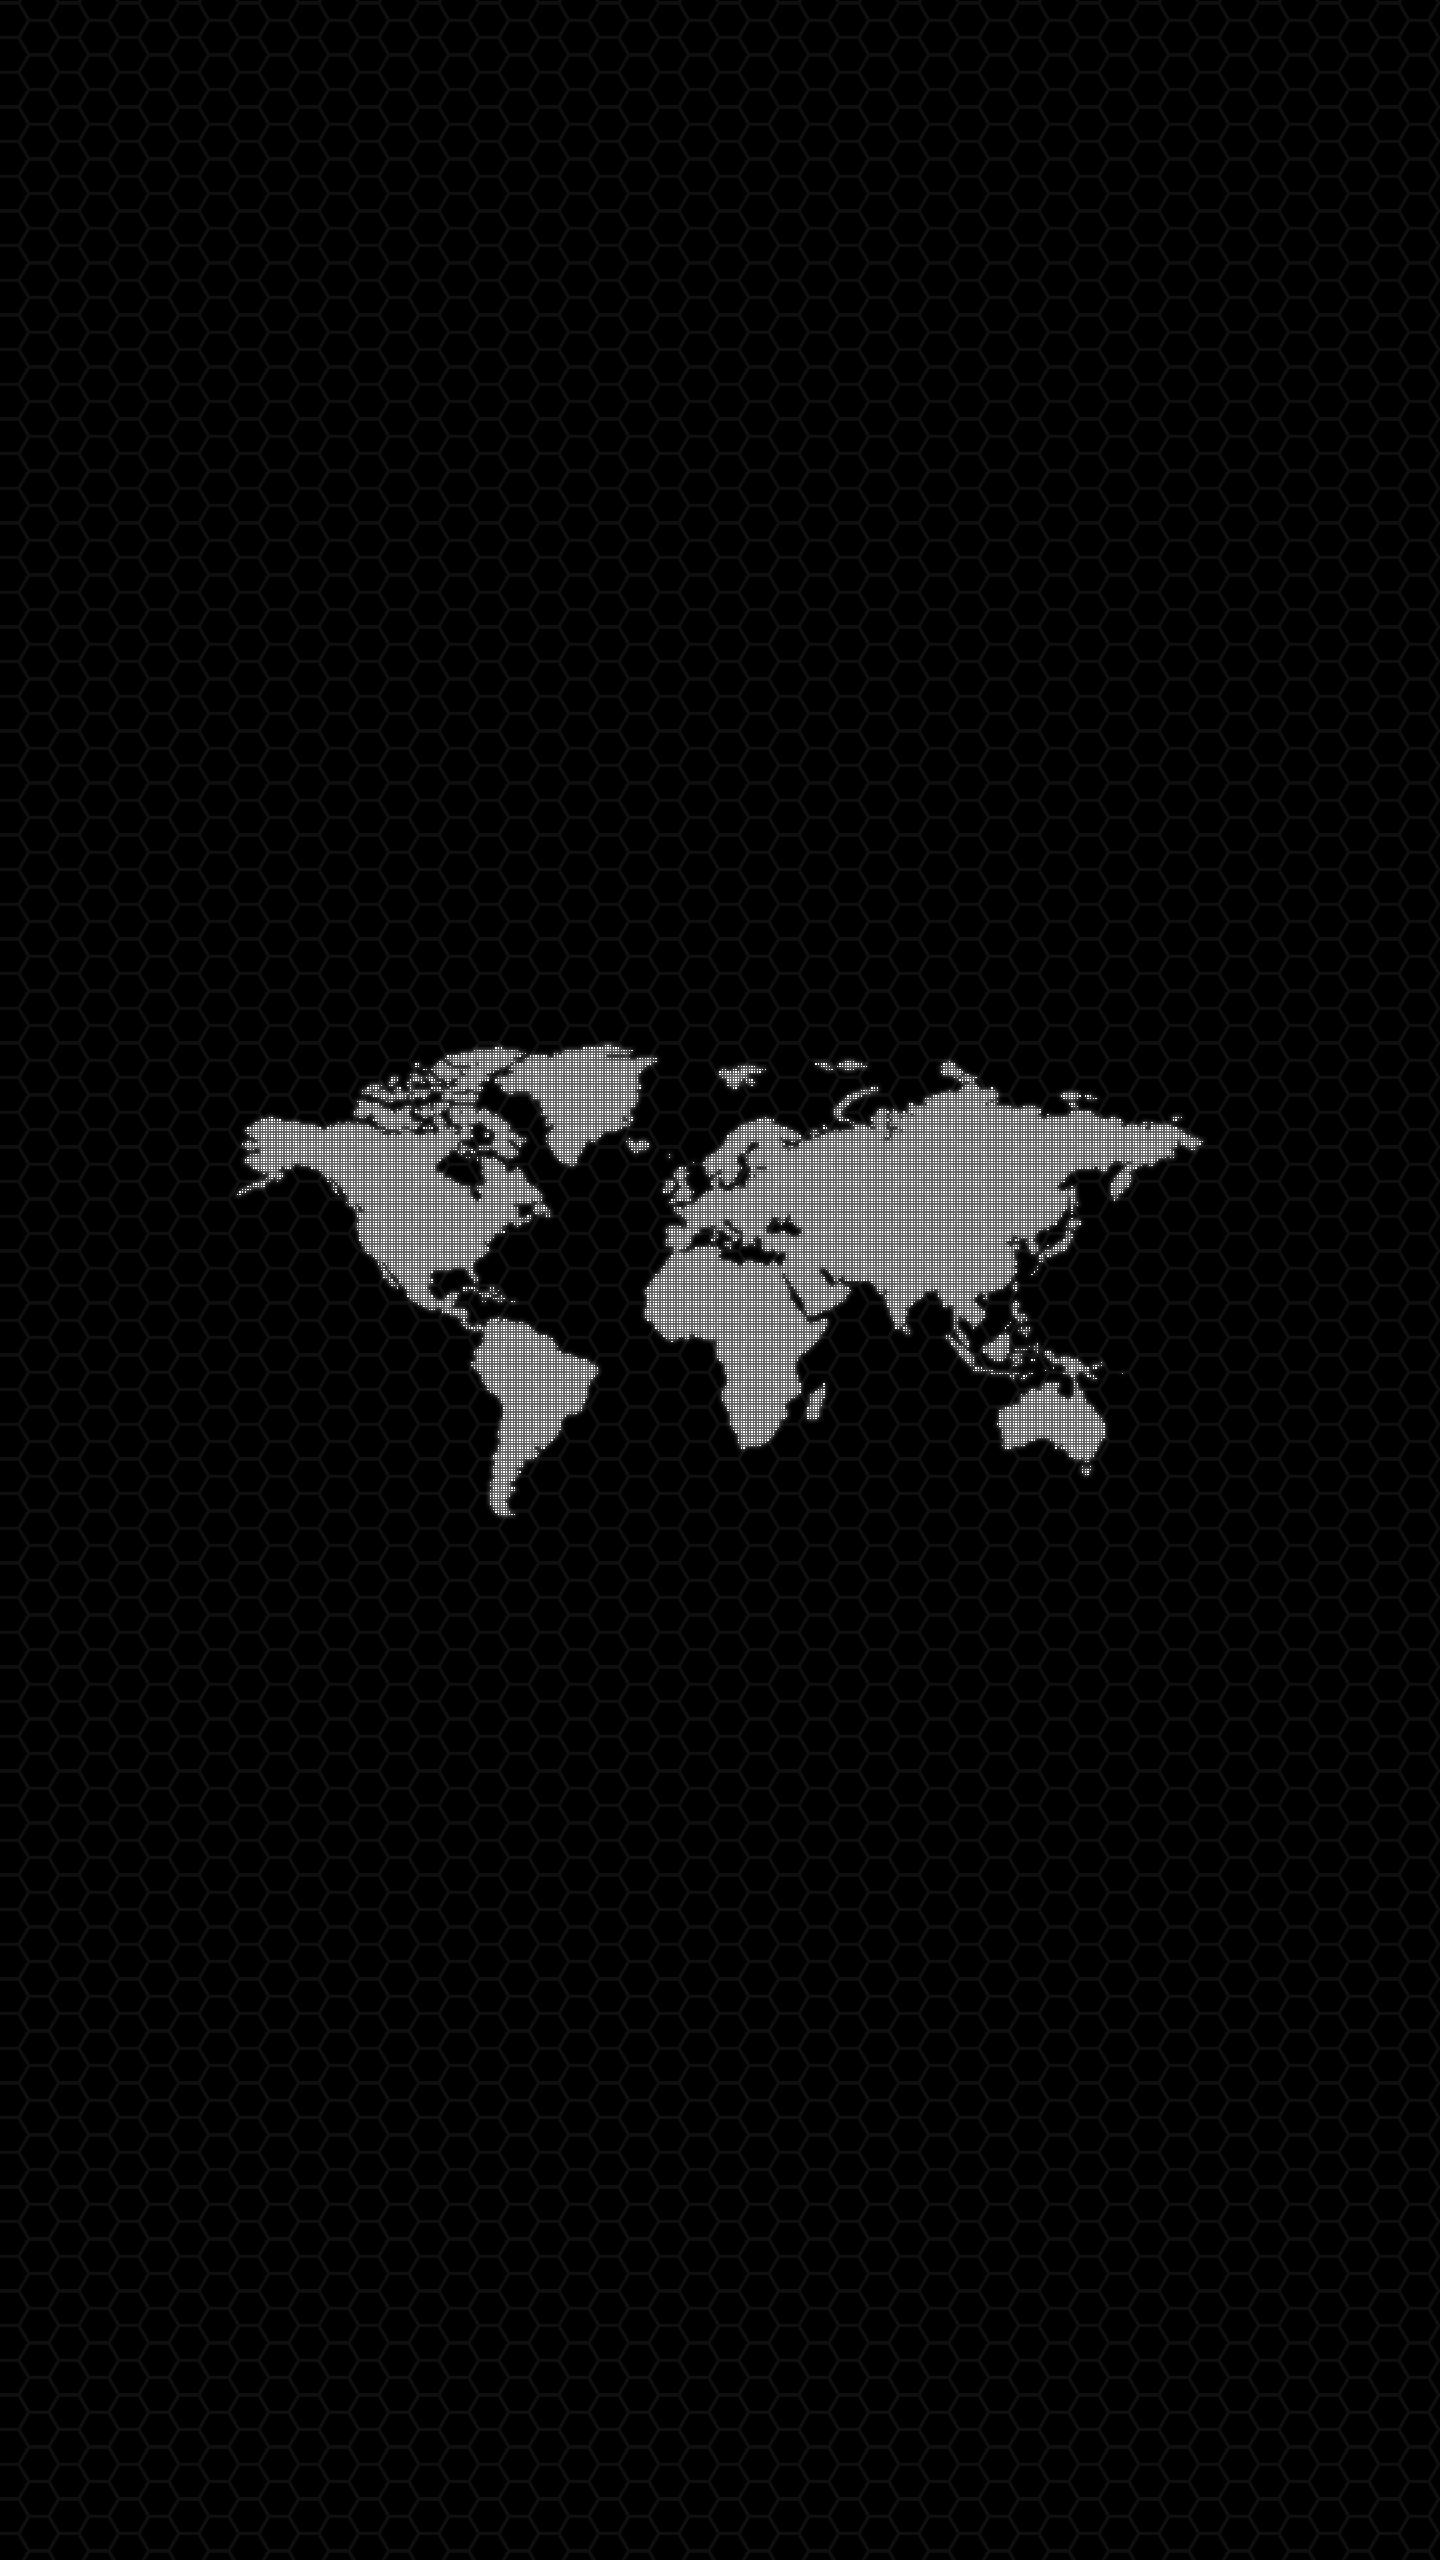 World Map Minimal Background HD Wallpaper